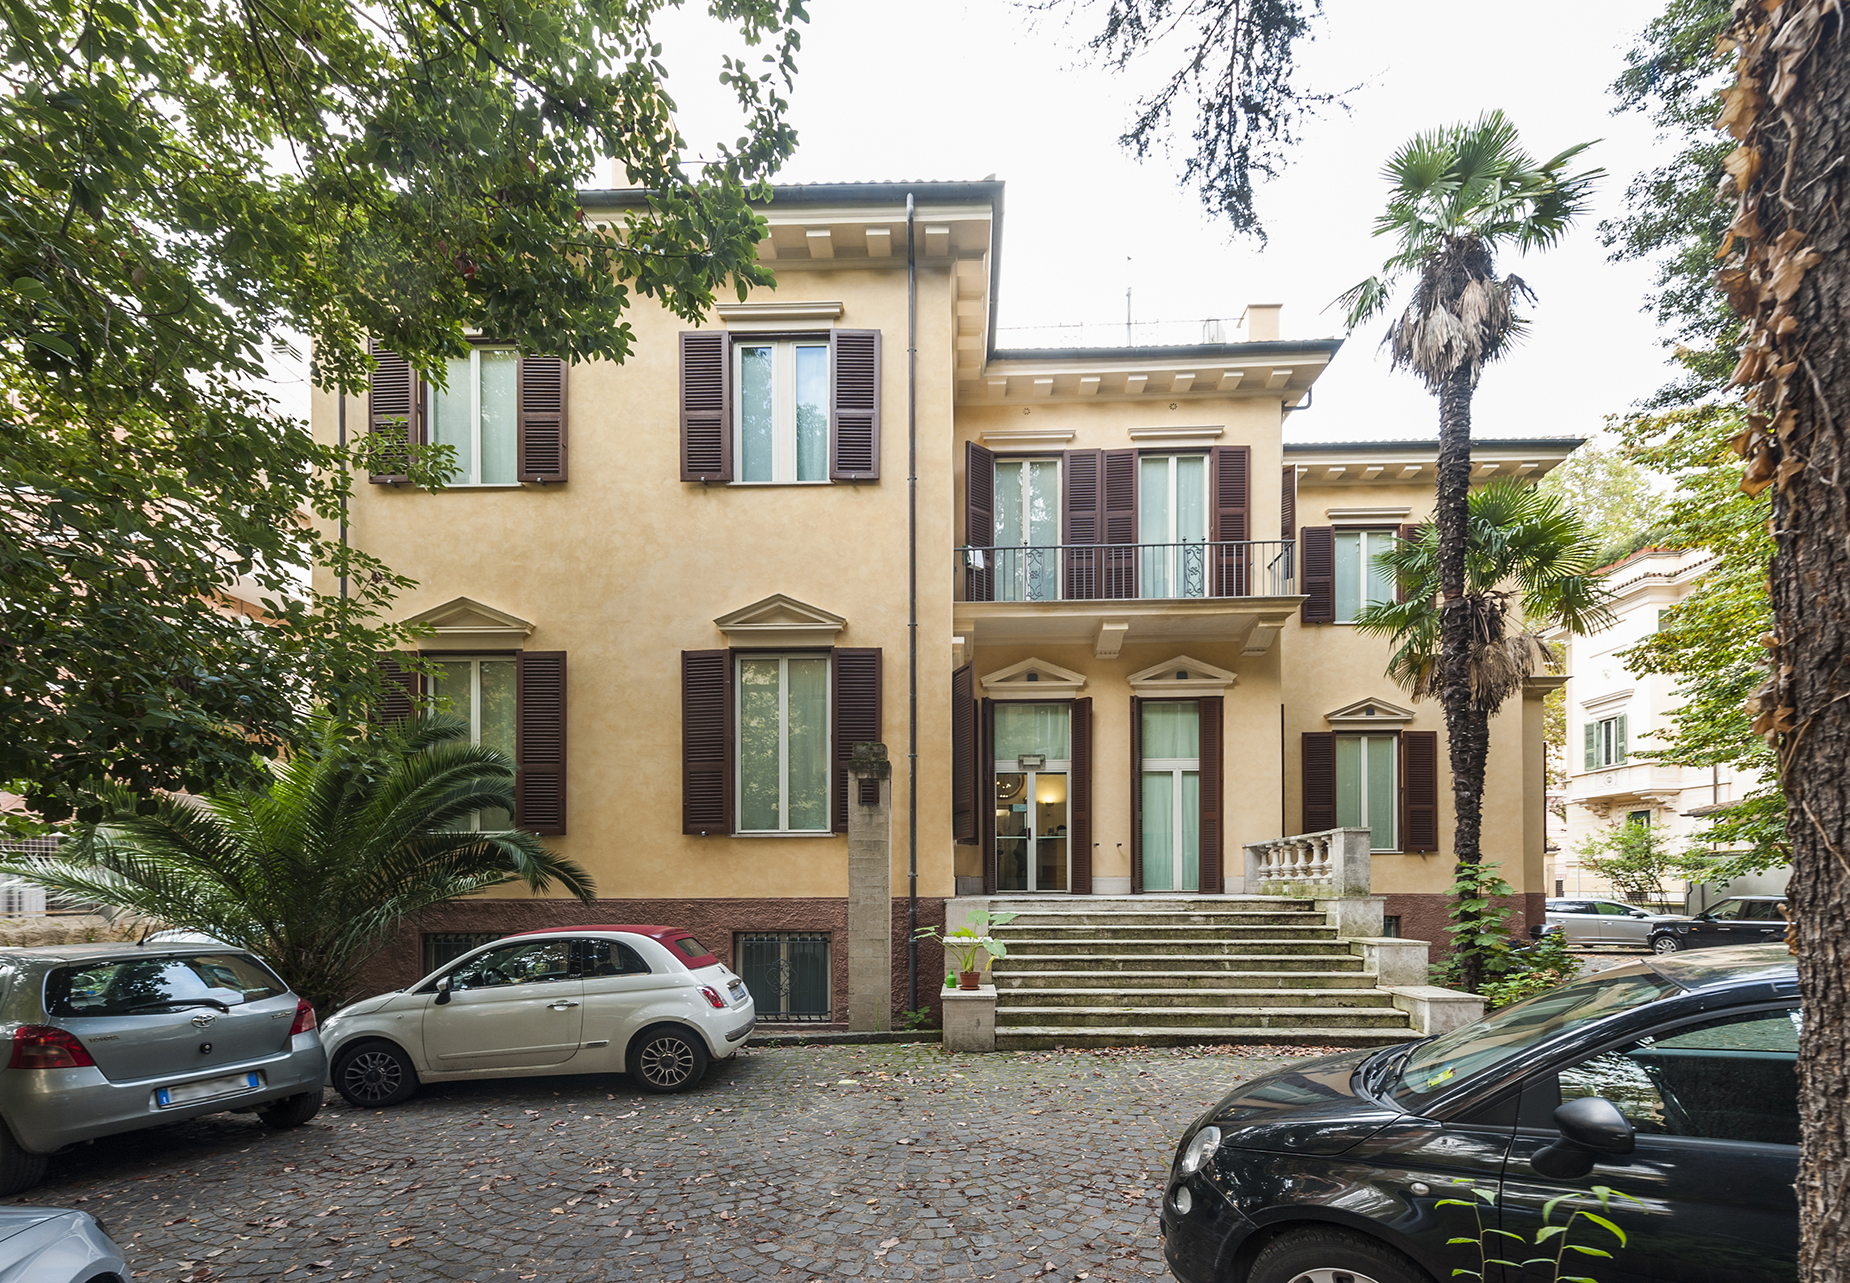 Single Family Home for Rent at Prestigious period house with private parking Viale Gioacchino Rossini Rome, 00197 Italy